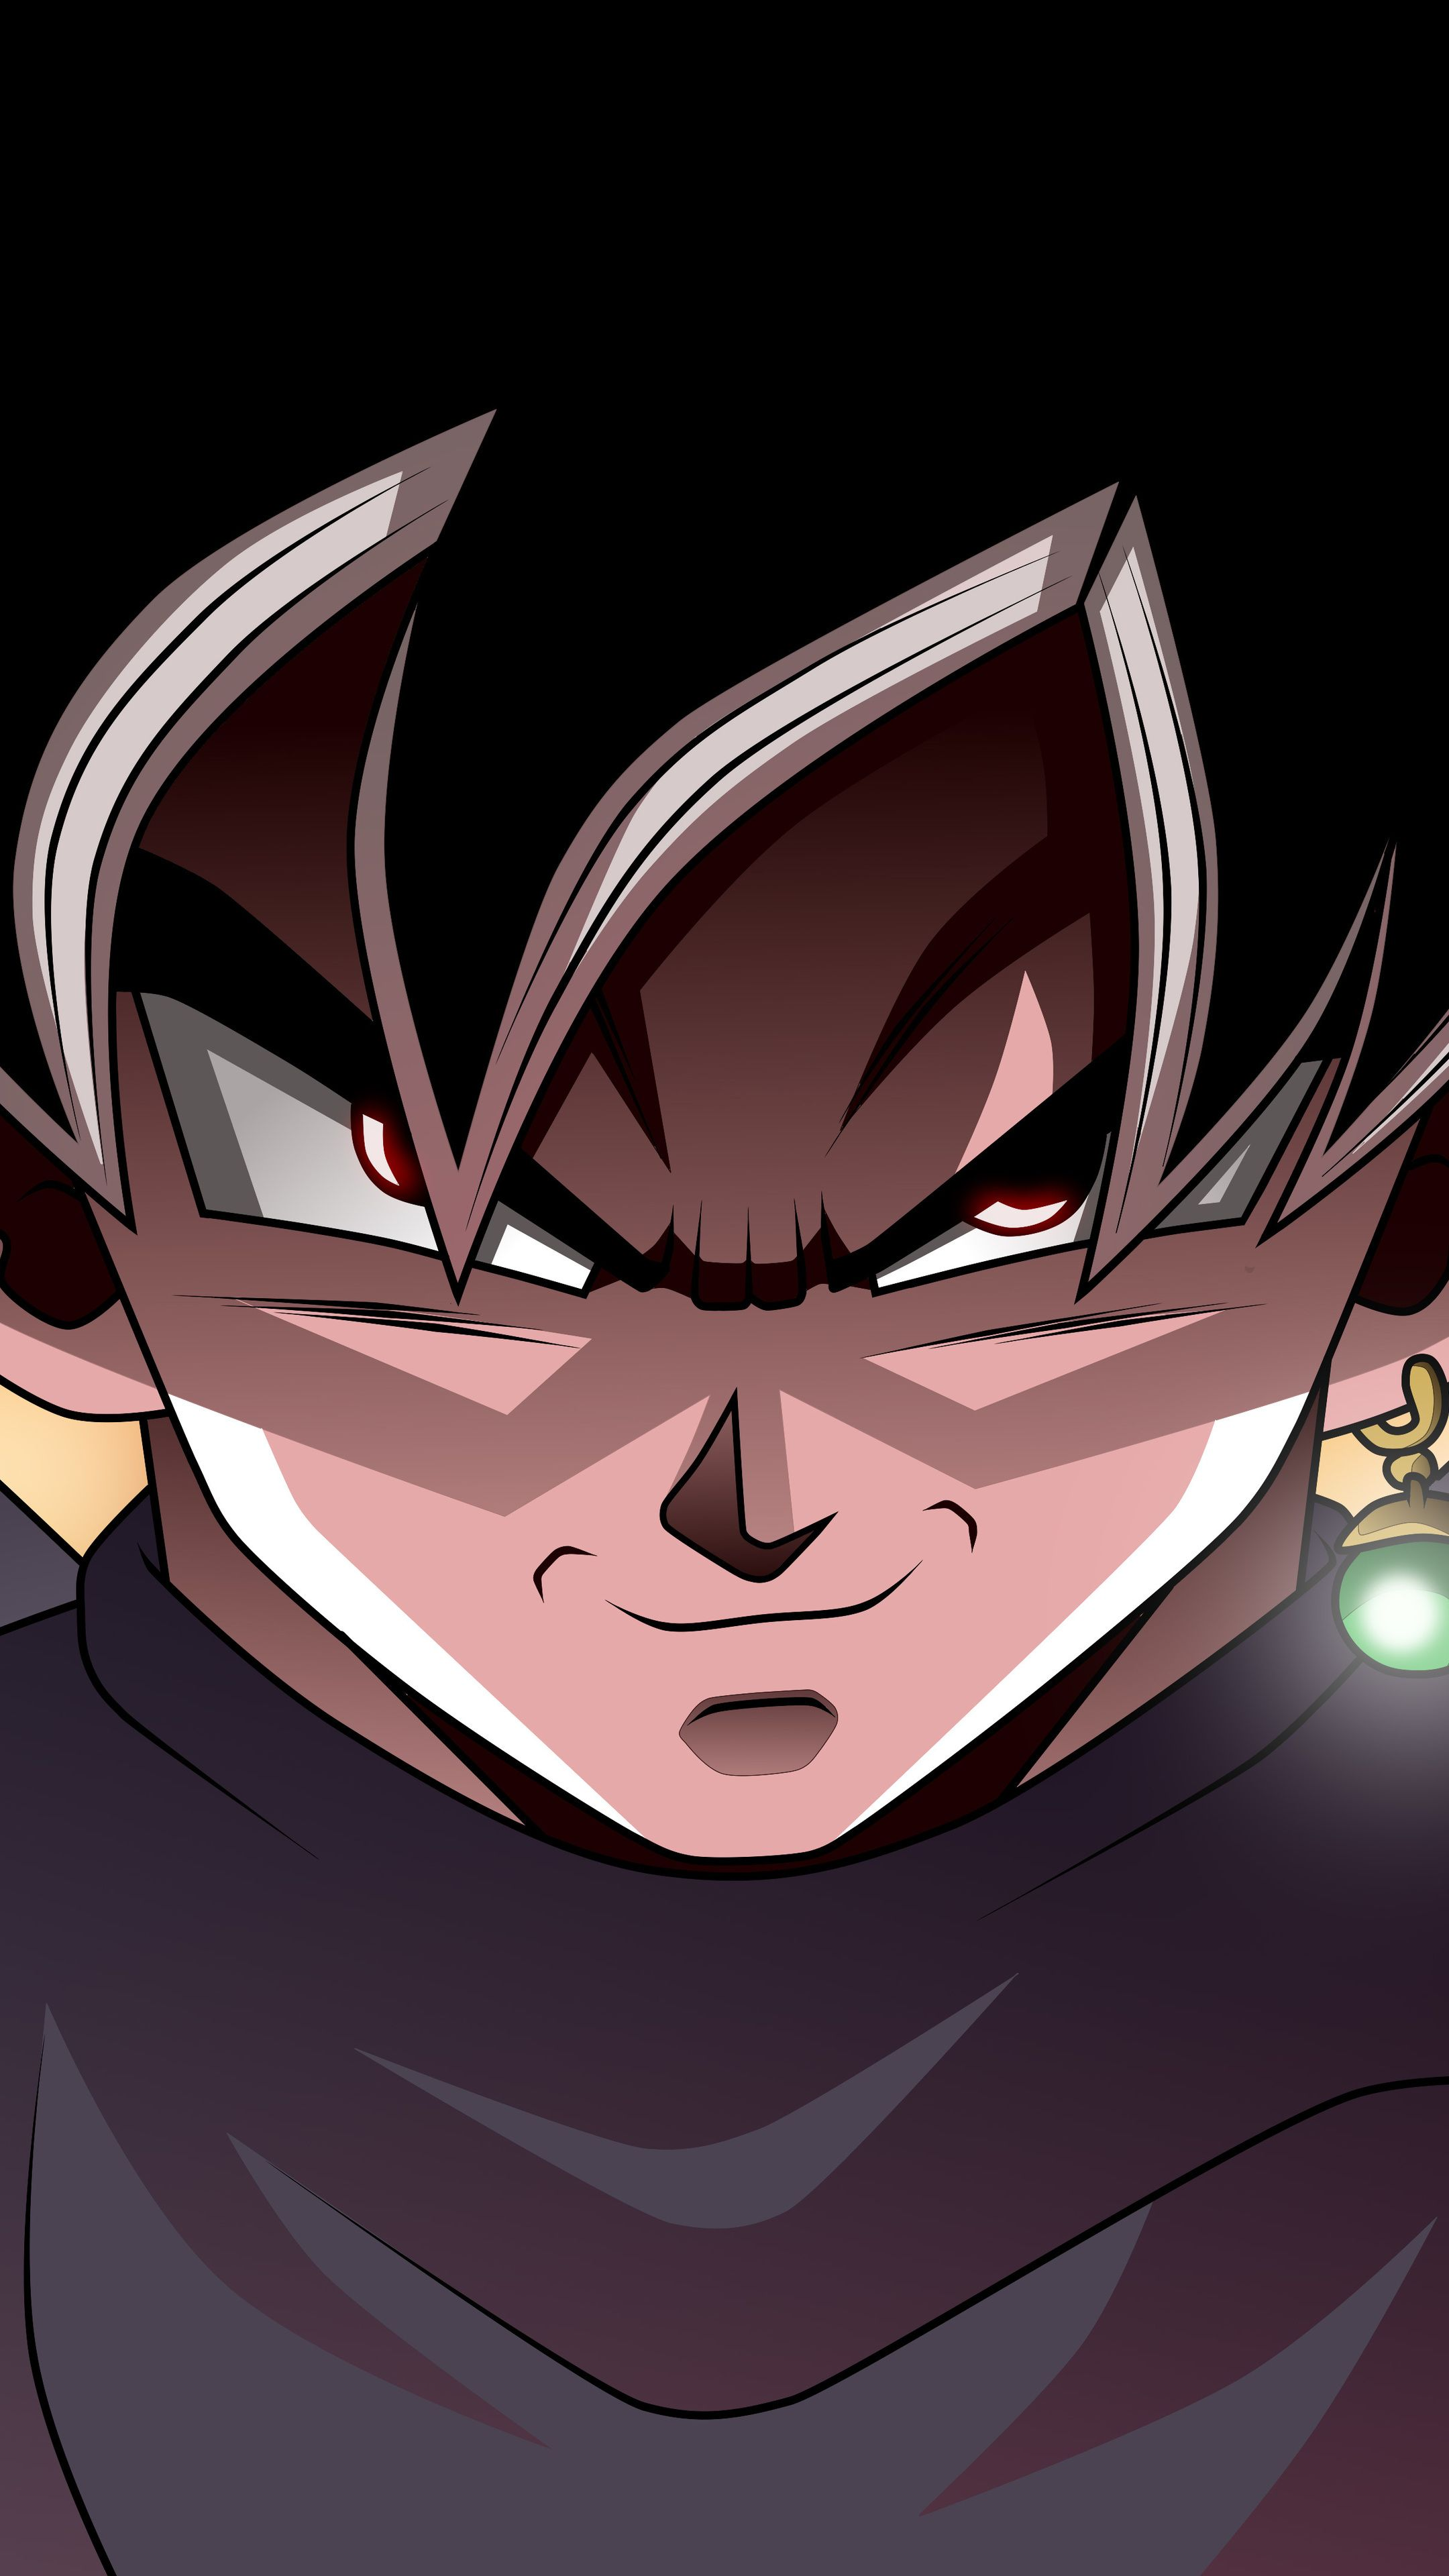 Download 700 Wallpaper Android Goku HD Paling Baru